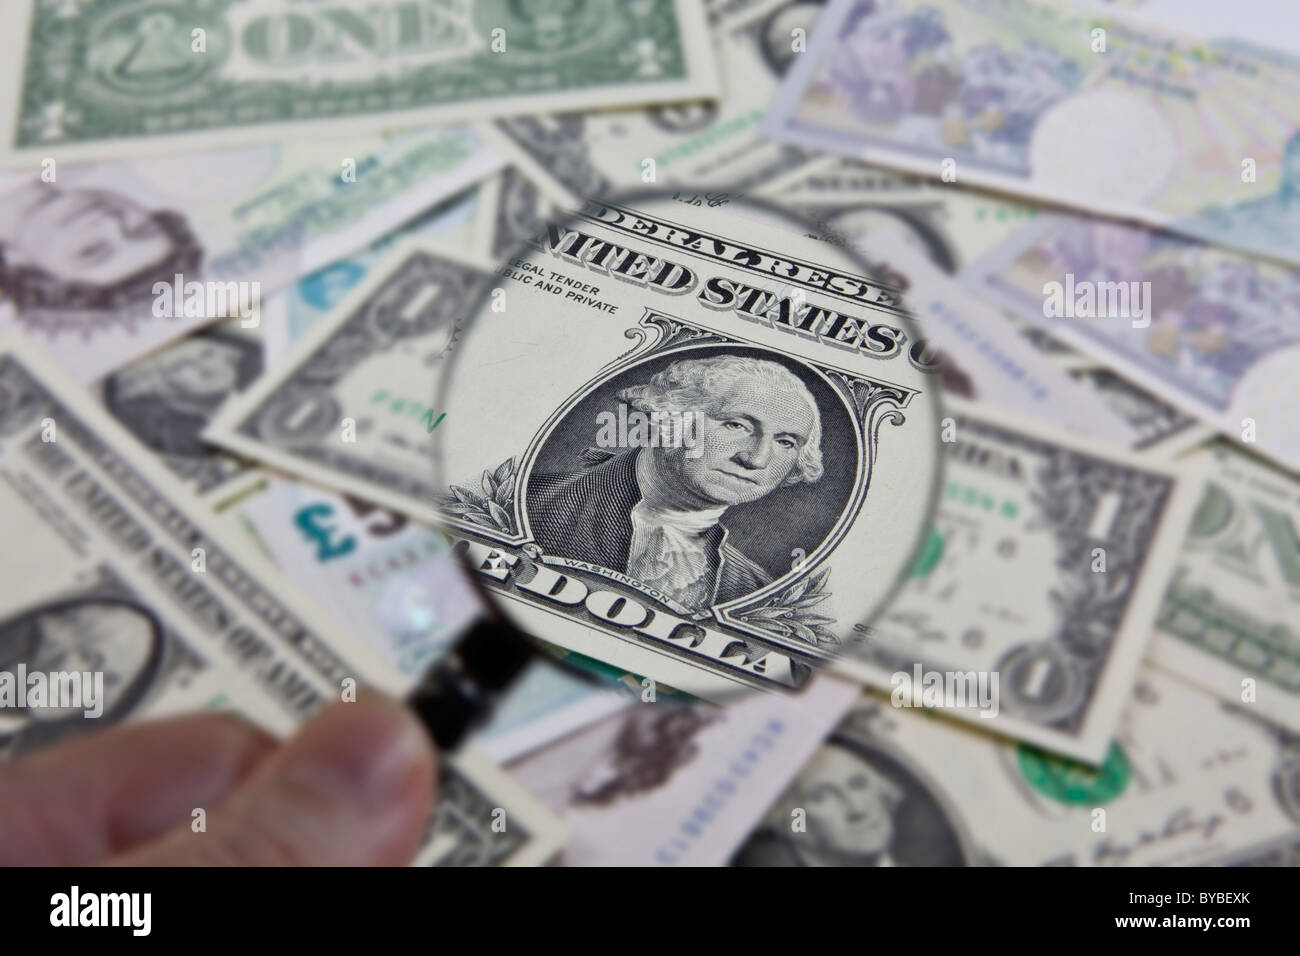 Observation of the U.S. dollar in relation to other currencies with a magnifying glass - Stock Image